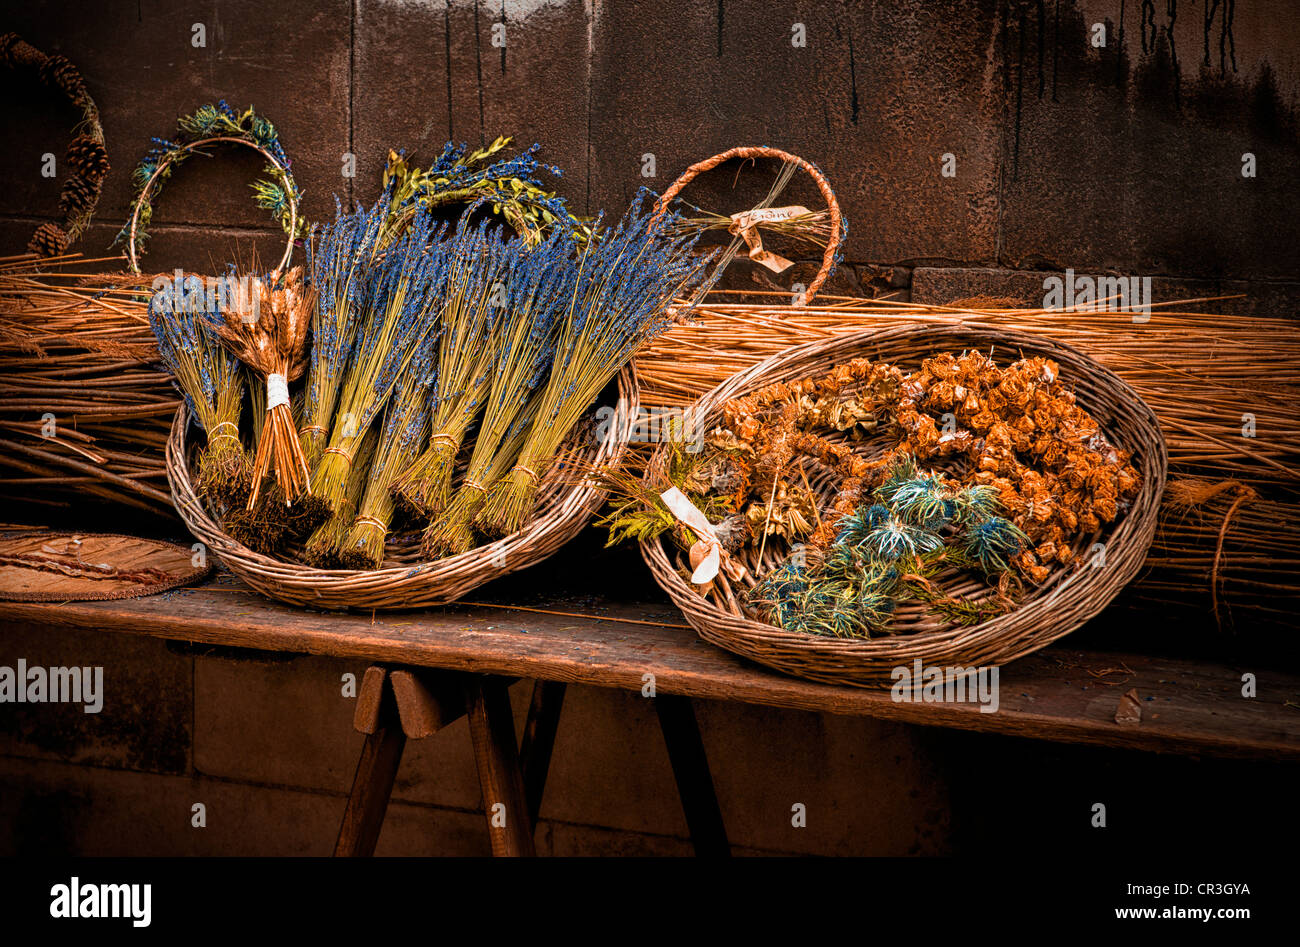 Paris market still life circa 1800 with bunches of lavender, nosegays and other decorations Stock Photo